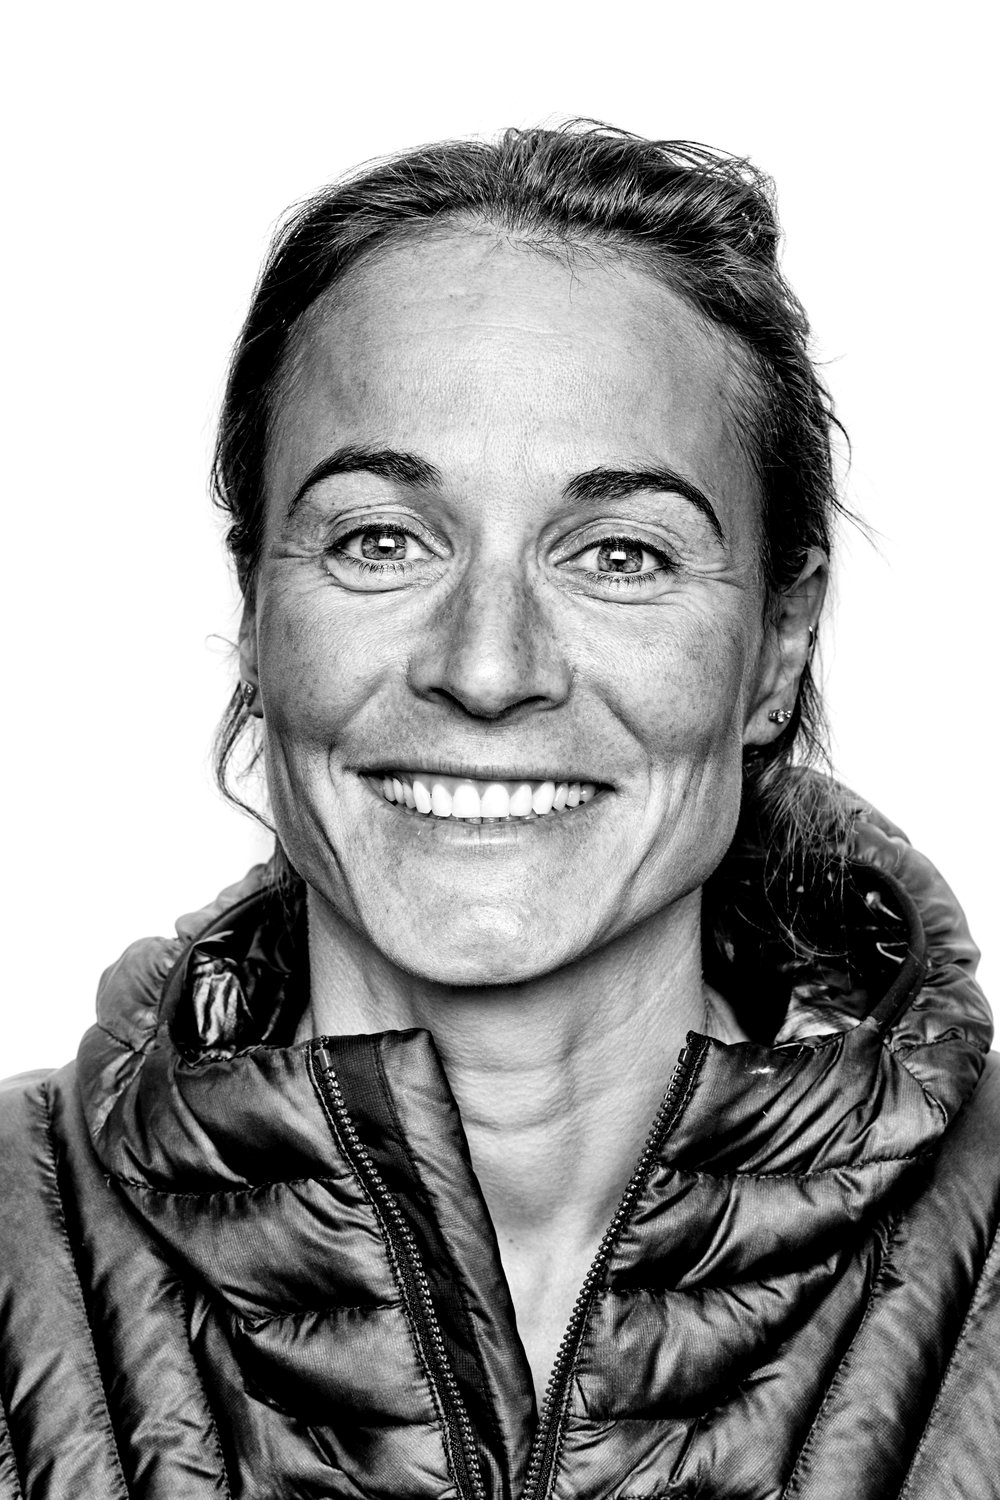 "<a href=""/hilaree-oneil"">Hilaree O'Neil<strong>Professional Ski Mountaineer</strong></a>"